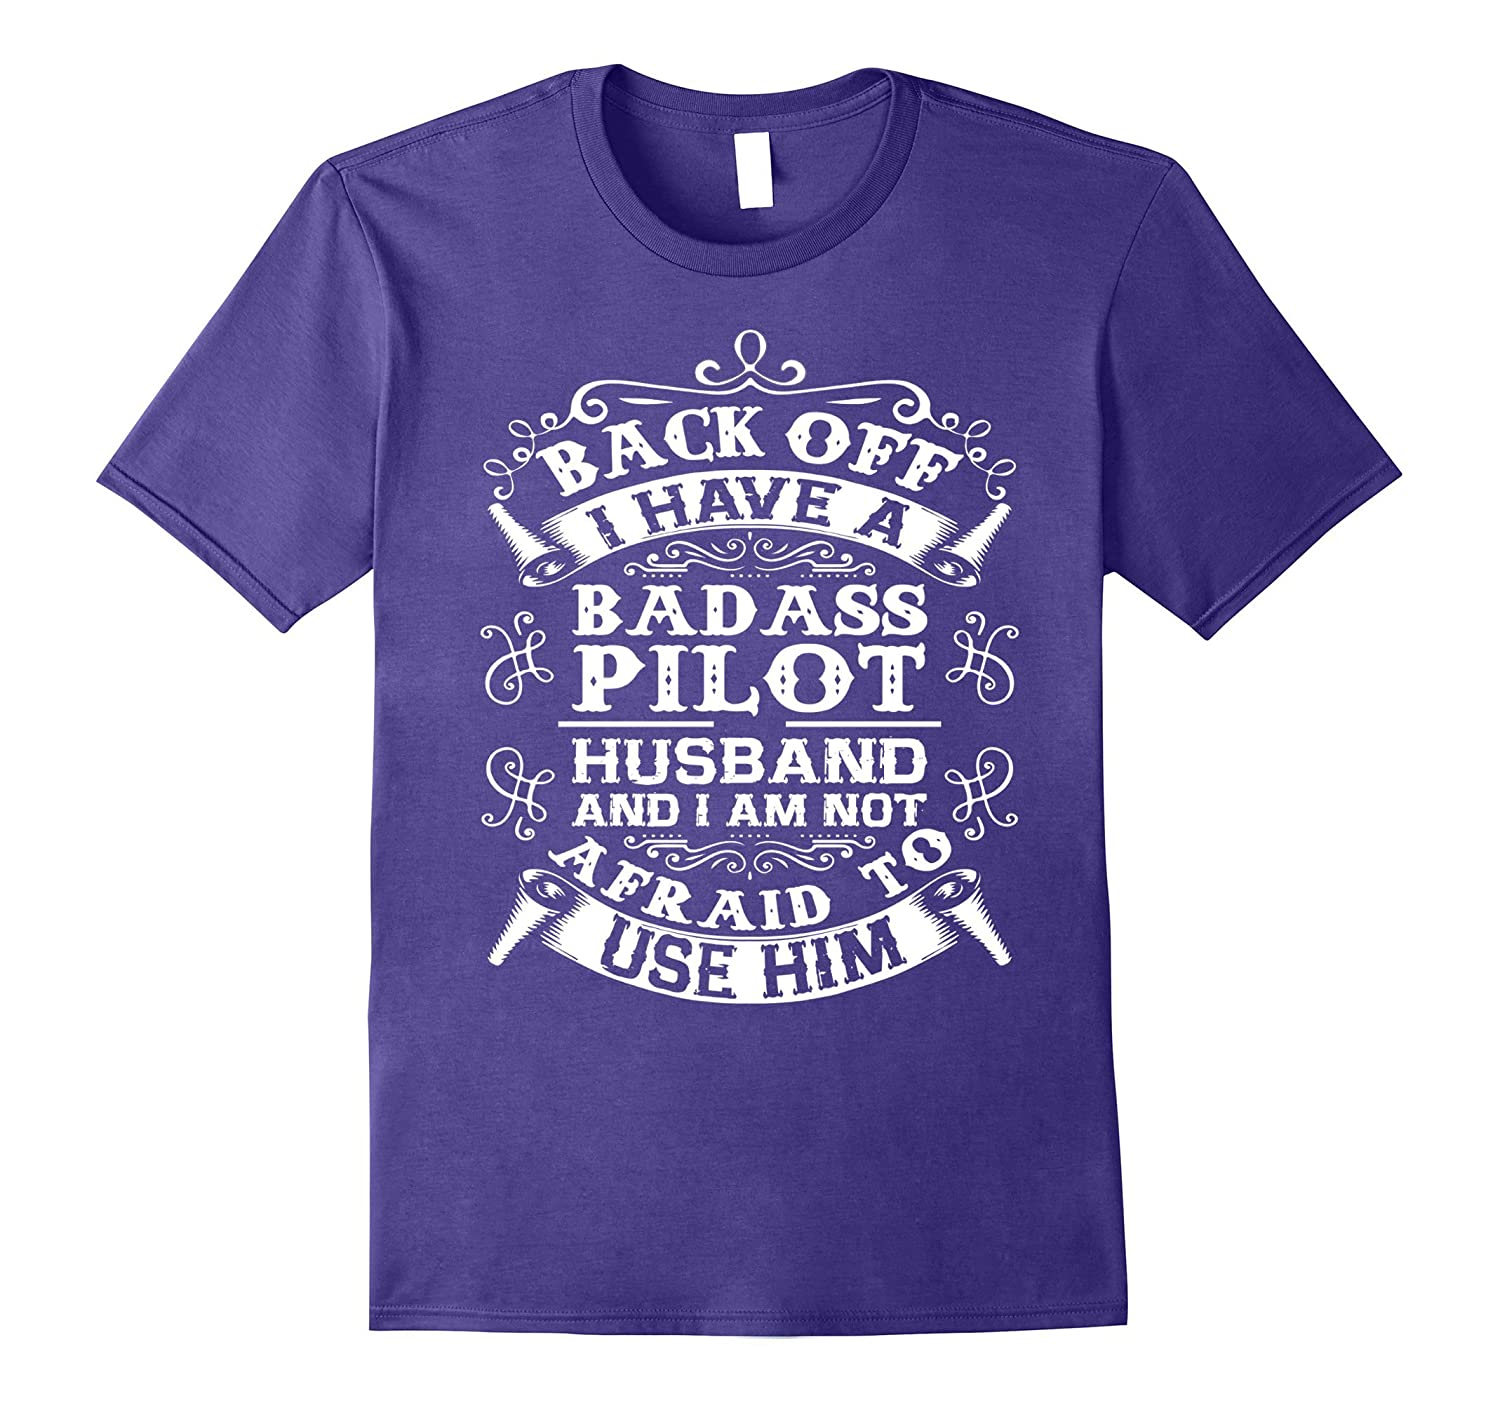 Back Off I Have A Badass Pilot Husband T-shirt Wife Gifts-TJ